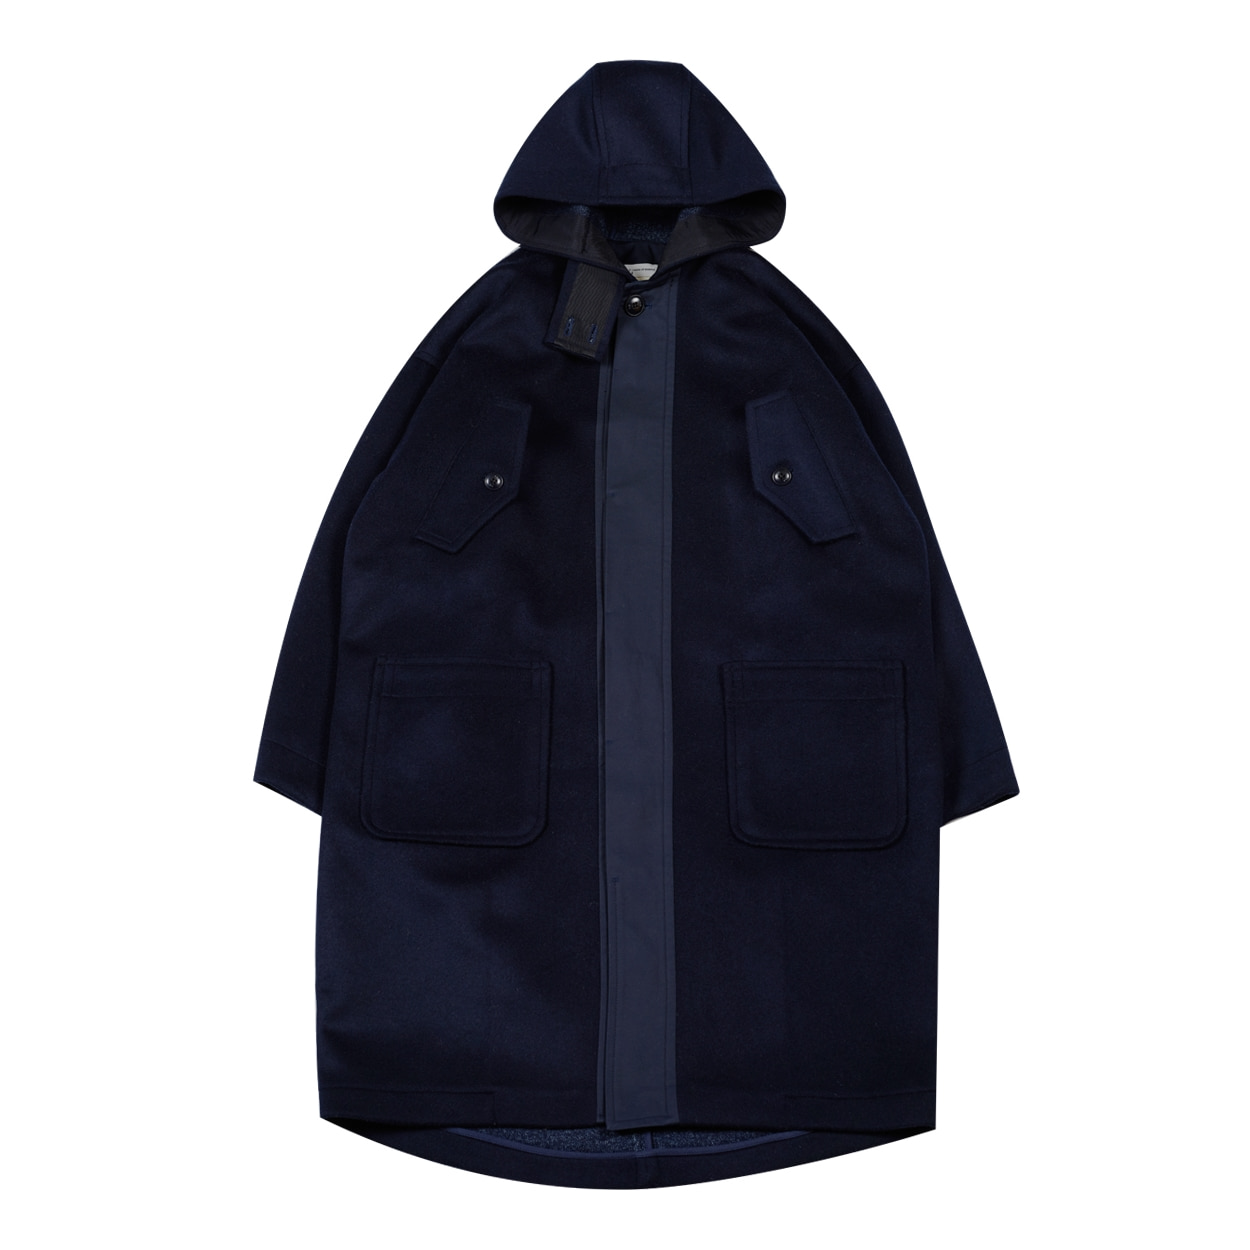 HOODED WOOL COAT - NAVY